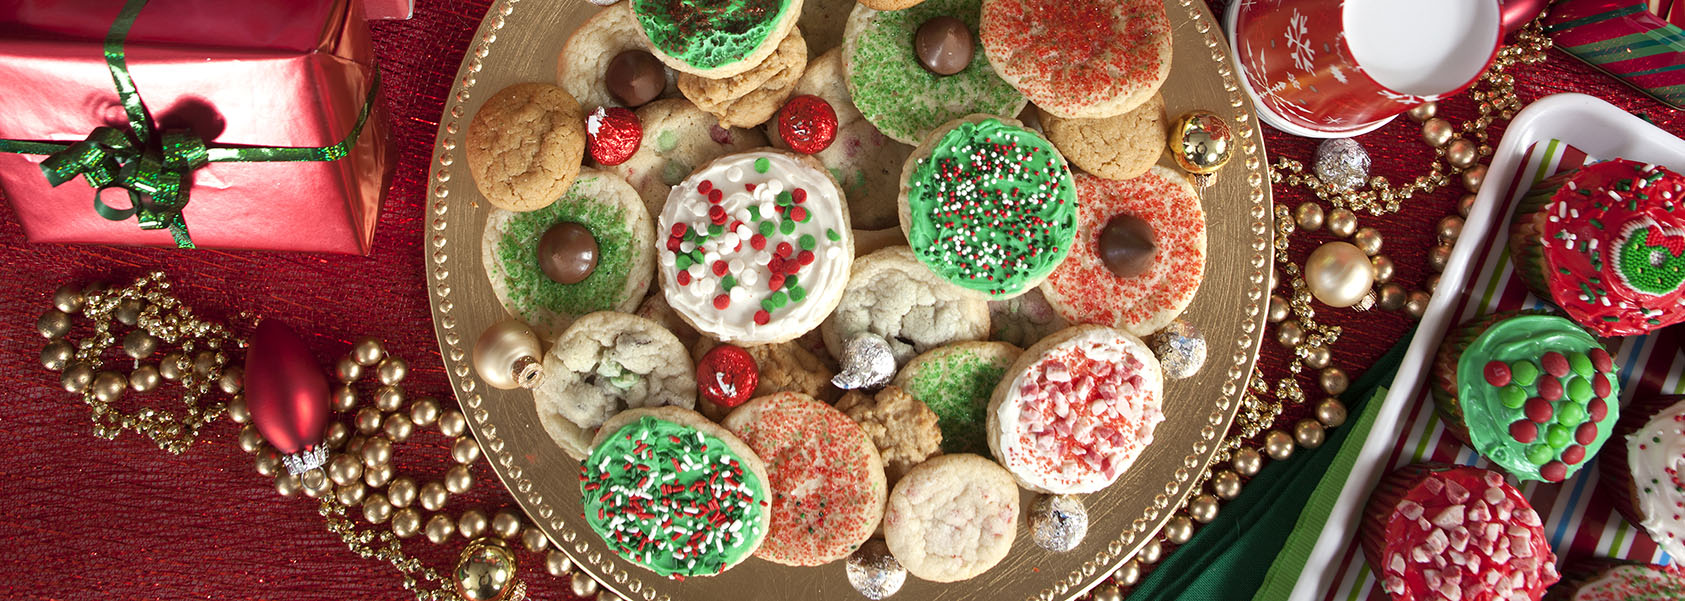 10 Christmas Cookie Recipes The Smart Market Blog